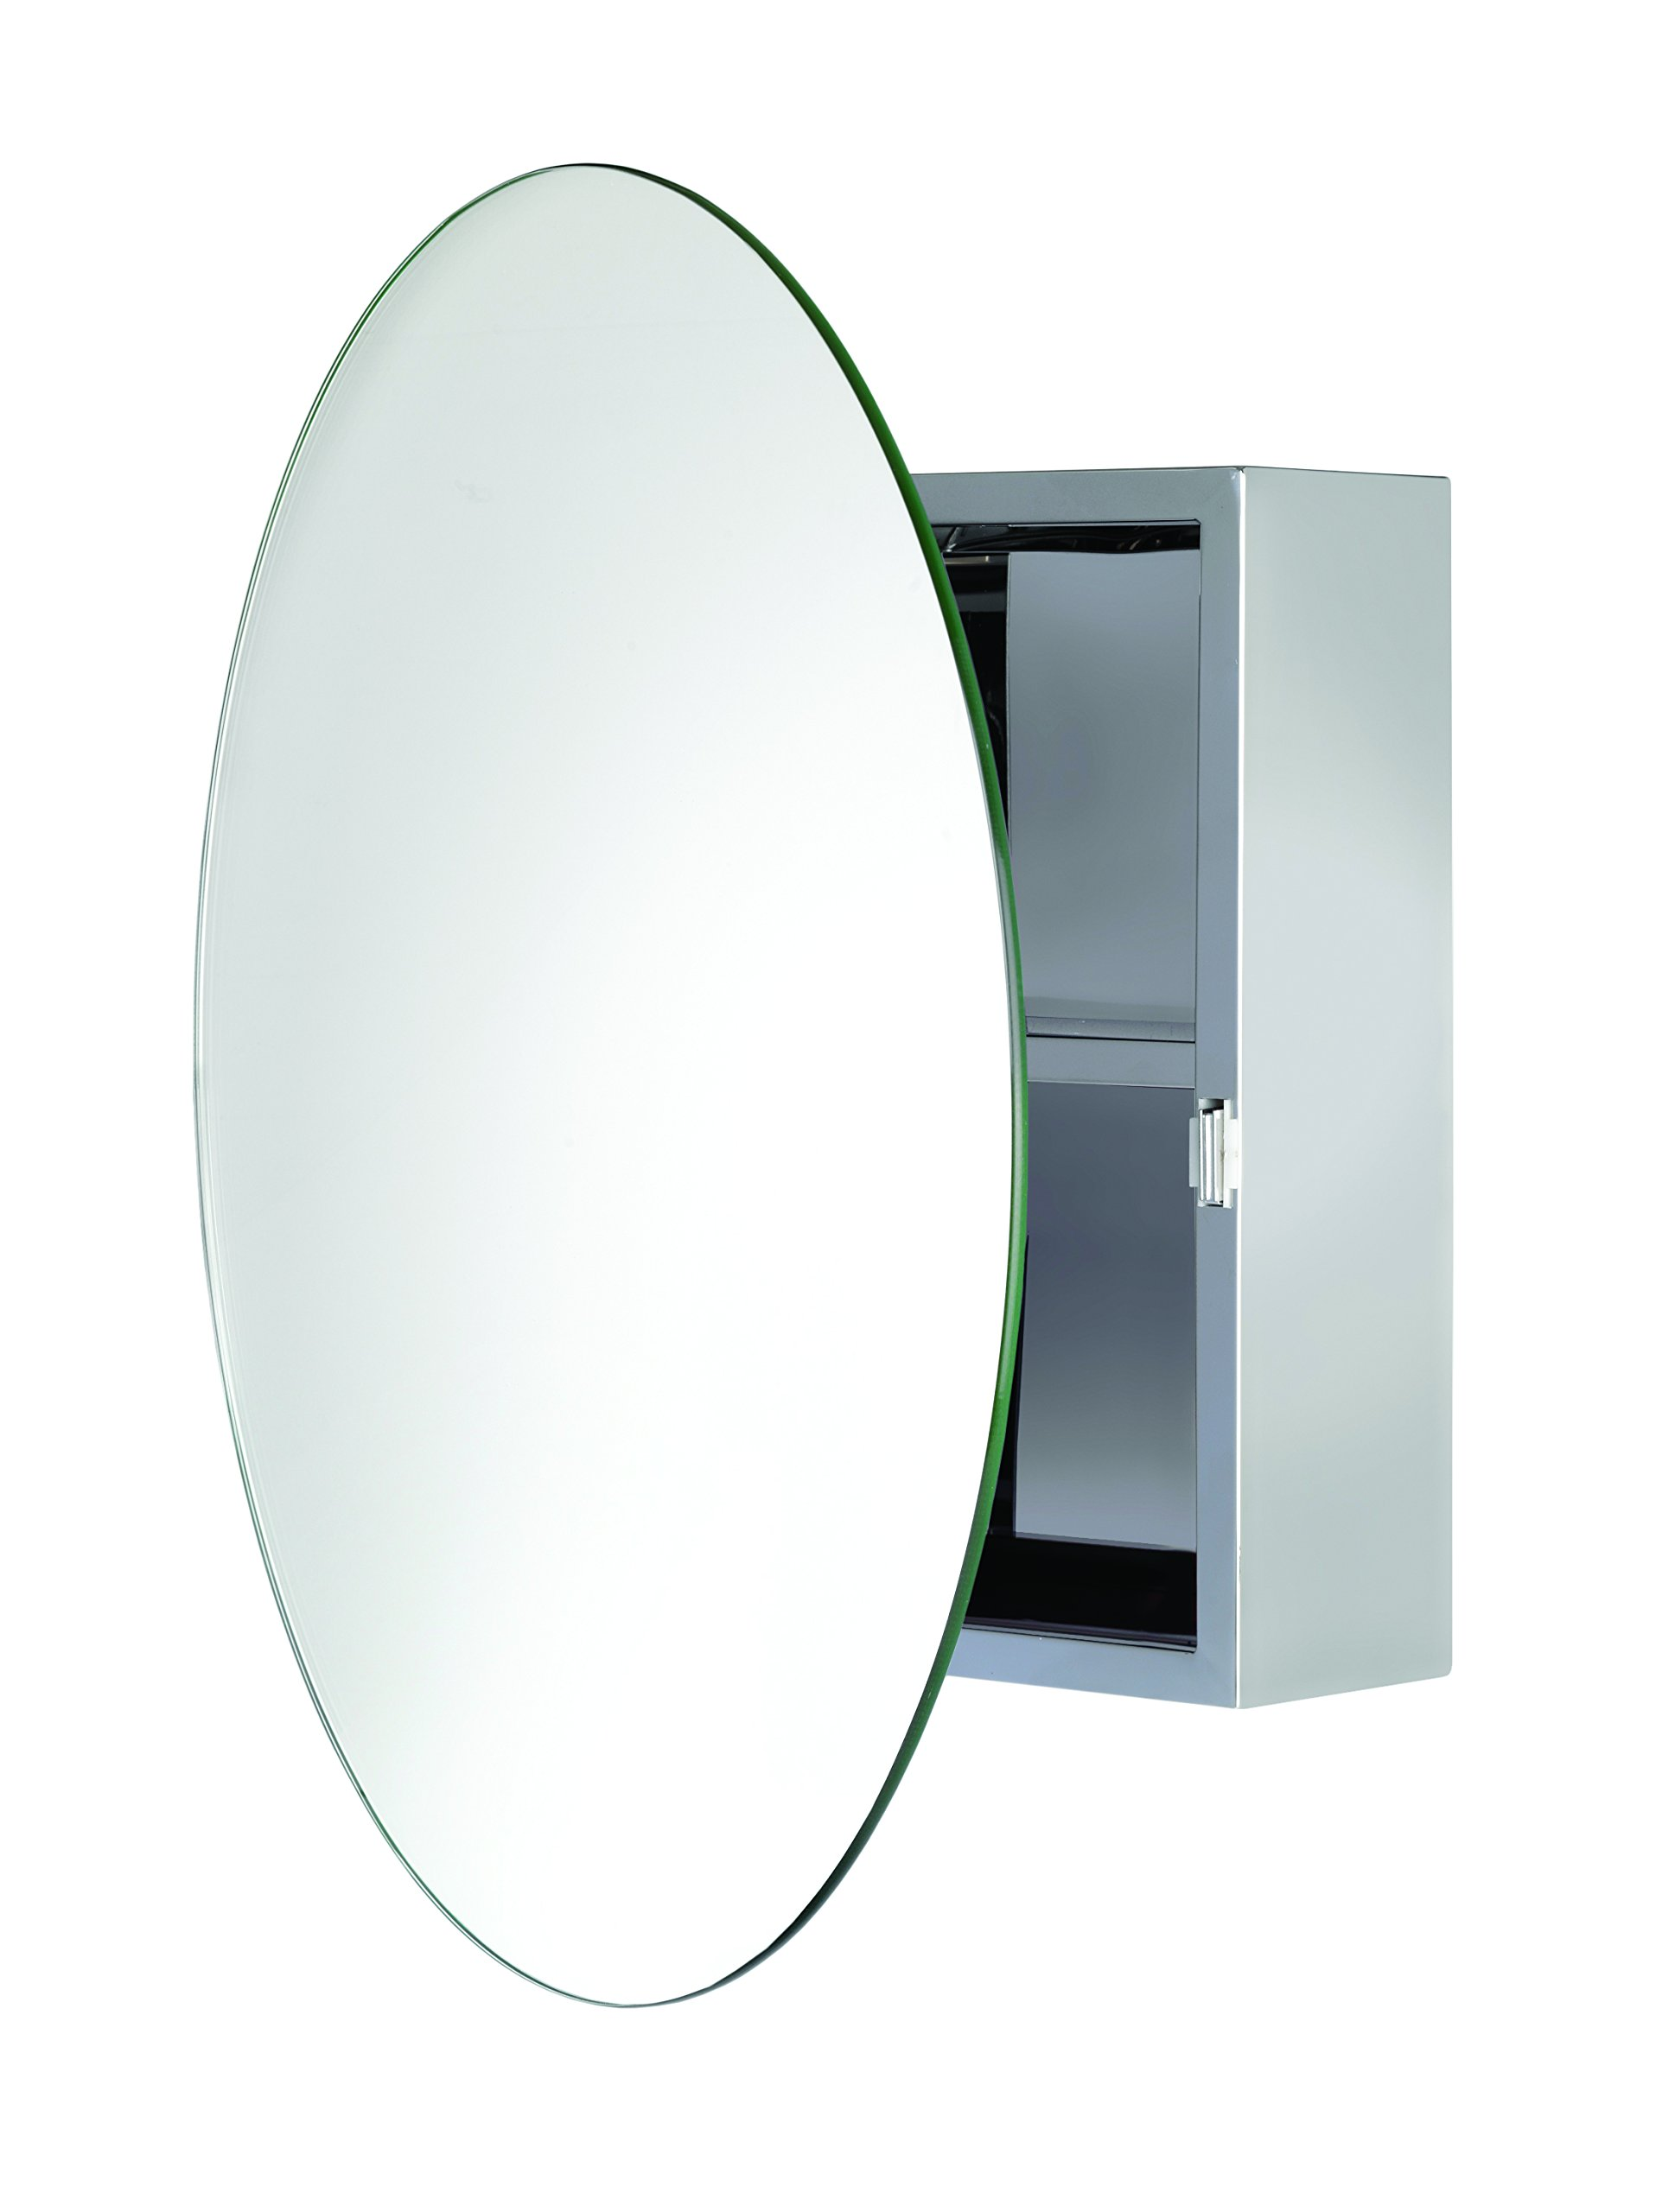 Croydex Severn Stainless Steel Circular Medicine Cabinet with Over Hanging Mirror Door, 19.7 x 19.7 x 3.9 In.